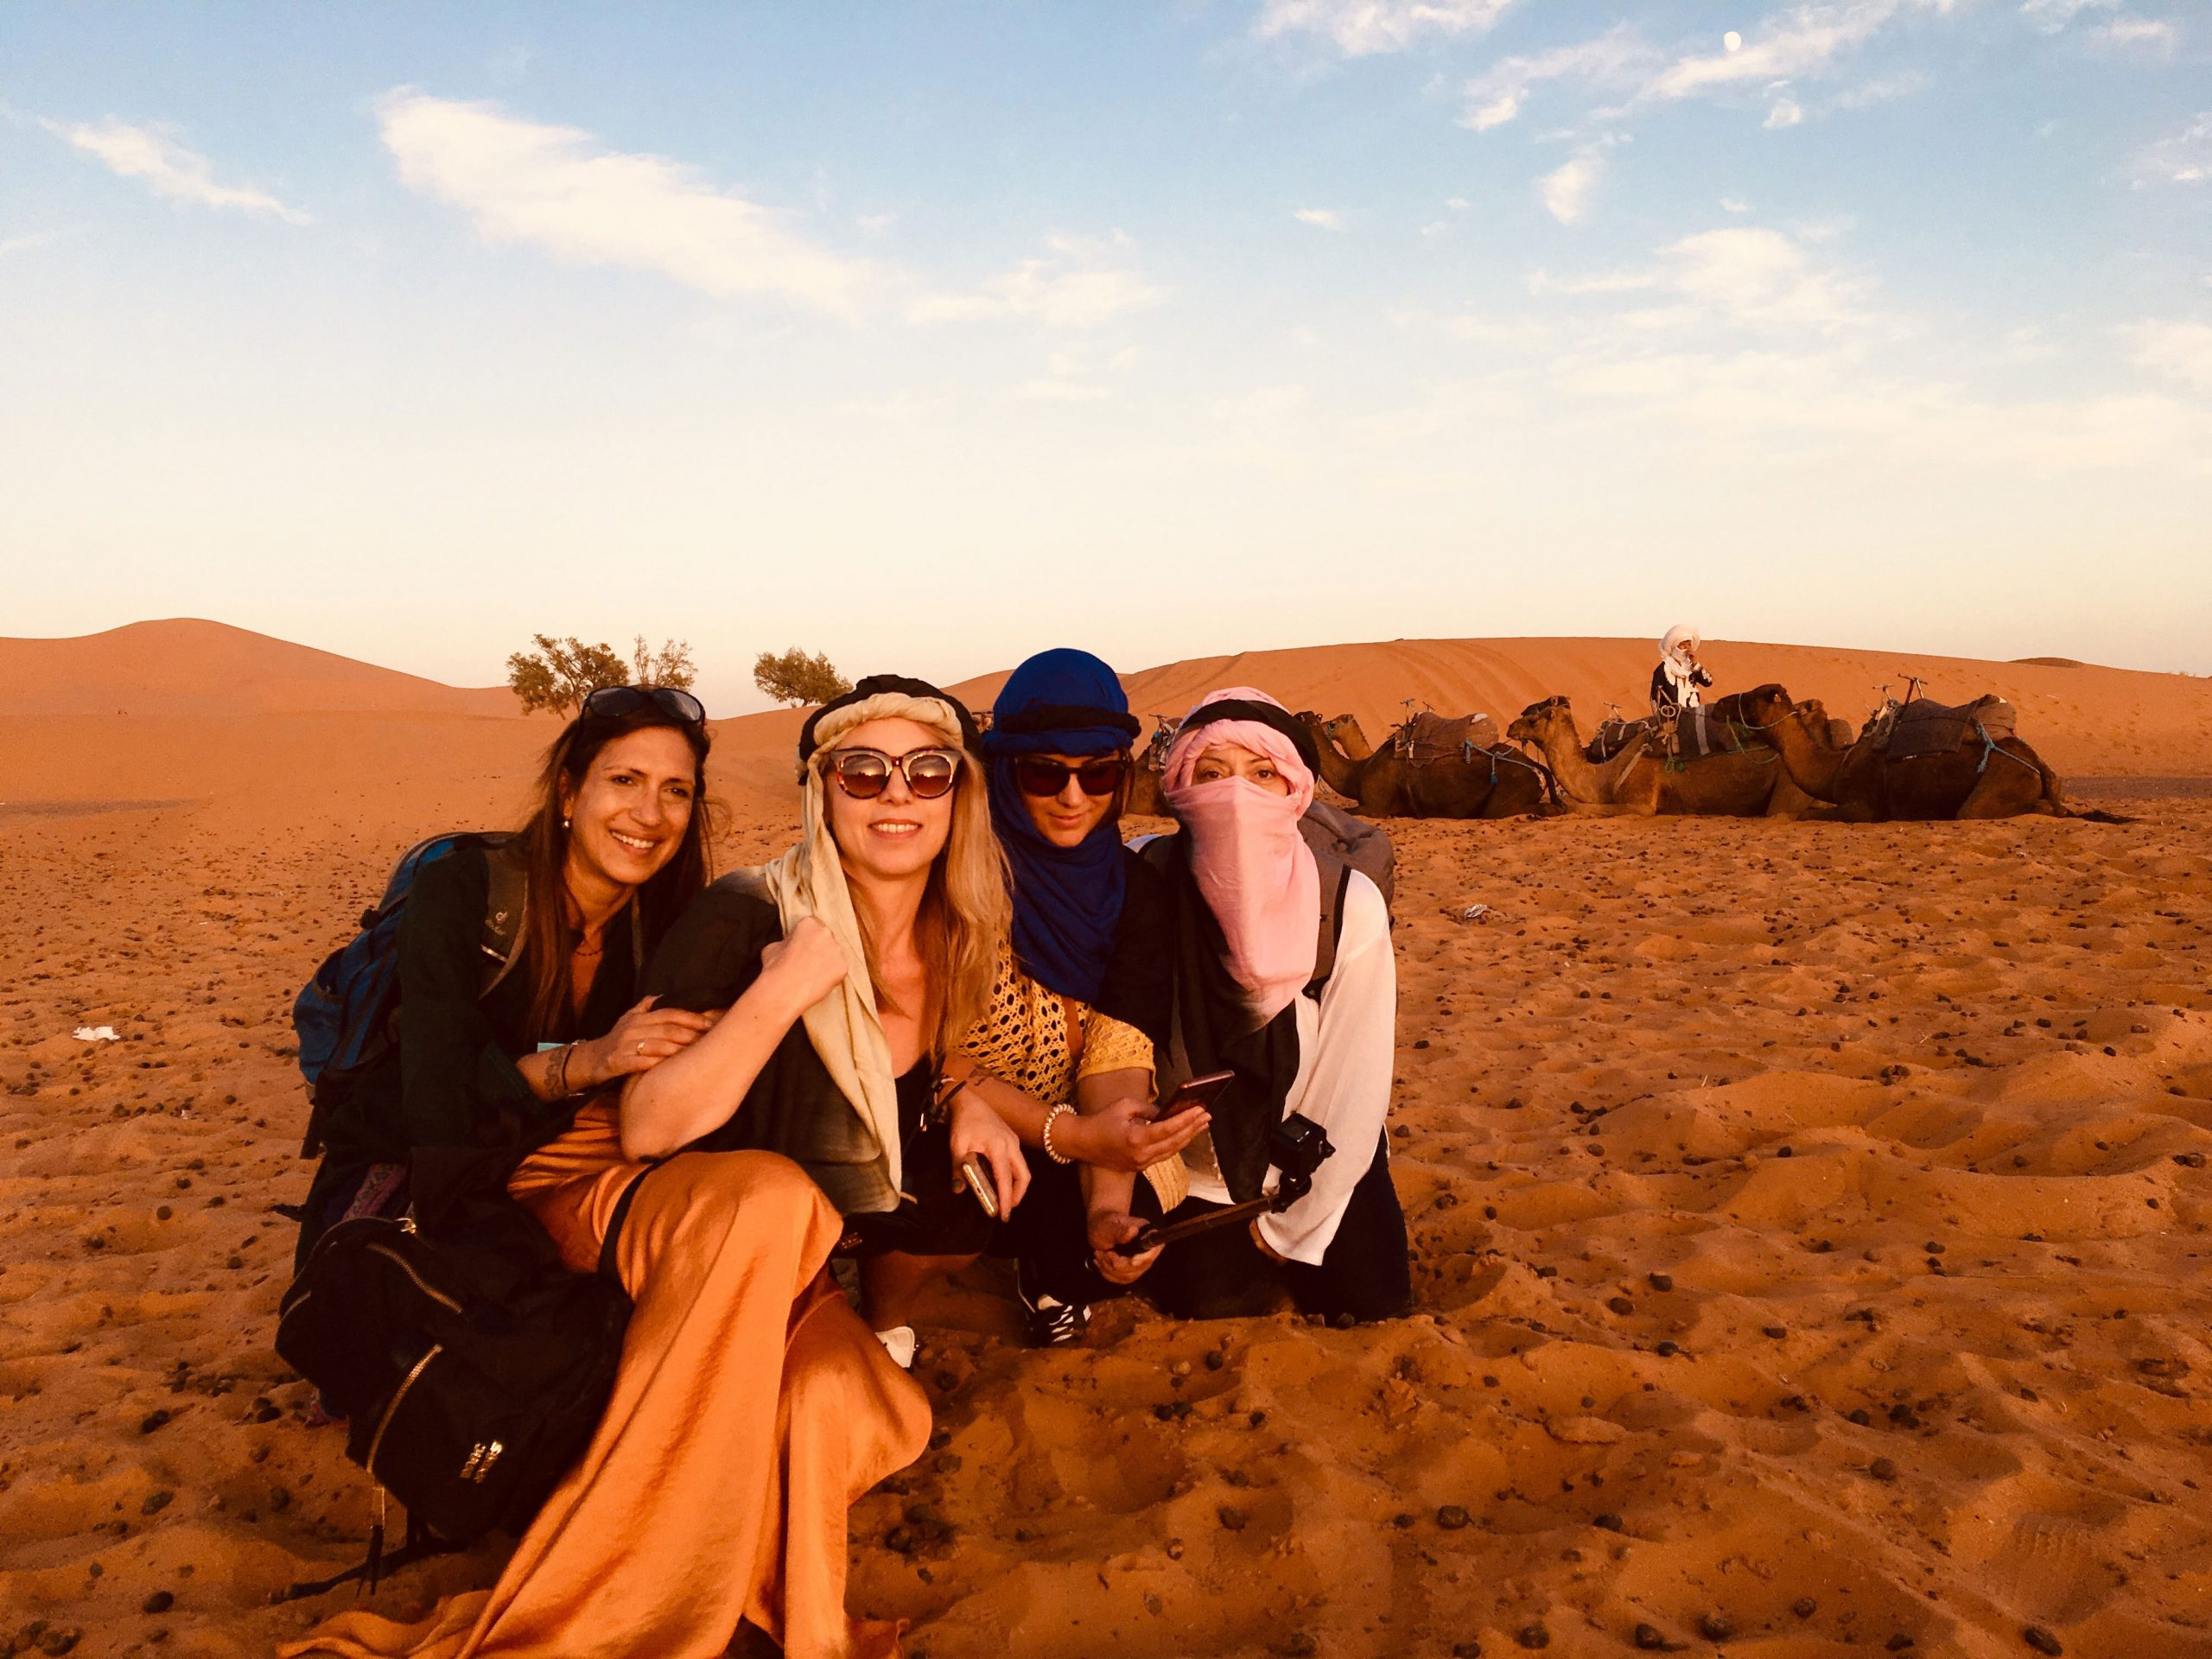 What-to-Pack-before-going-on-a-Desert-tour-in-Morocco-sahara